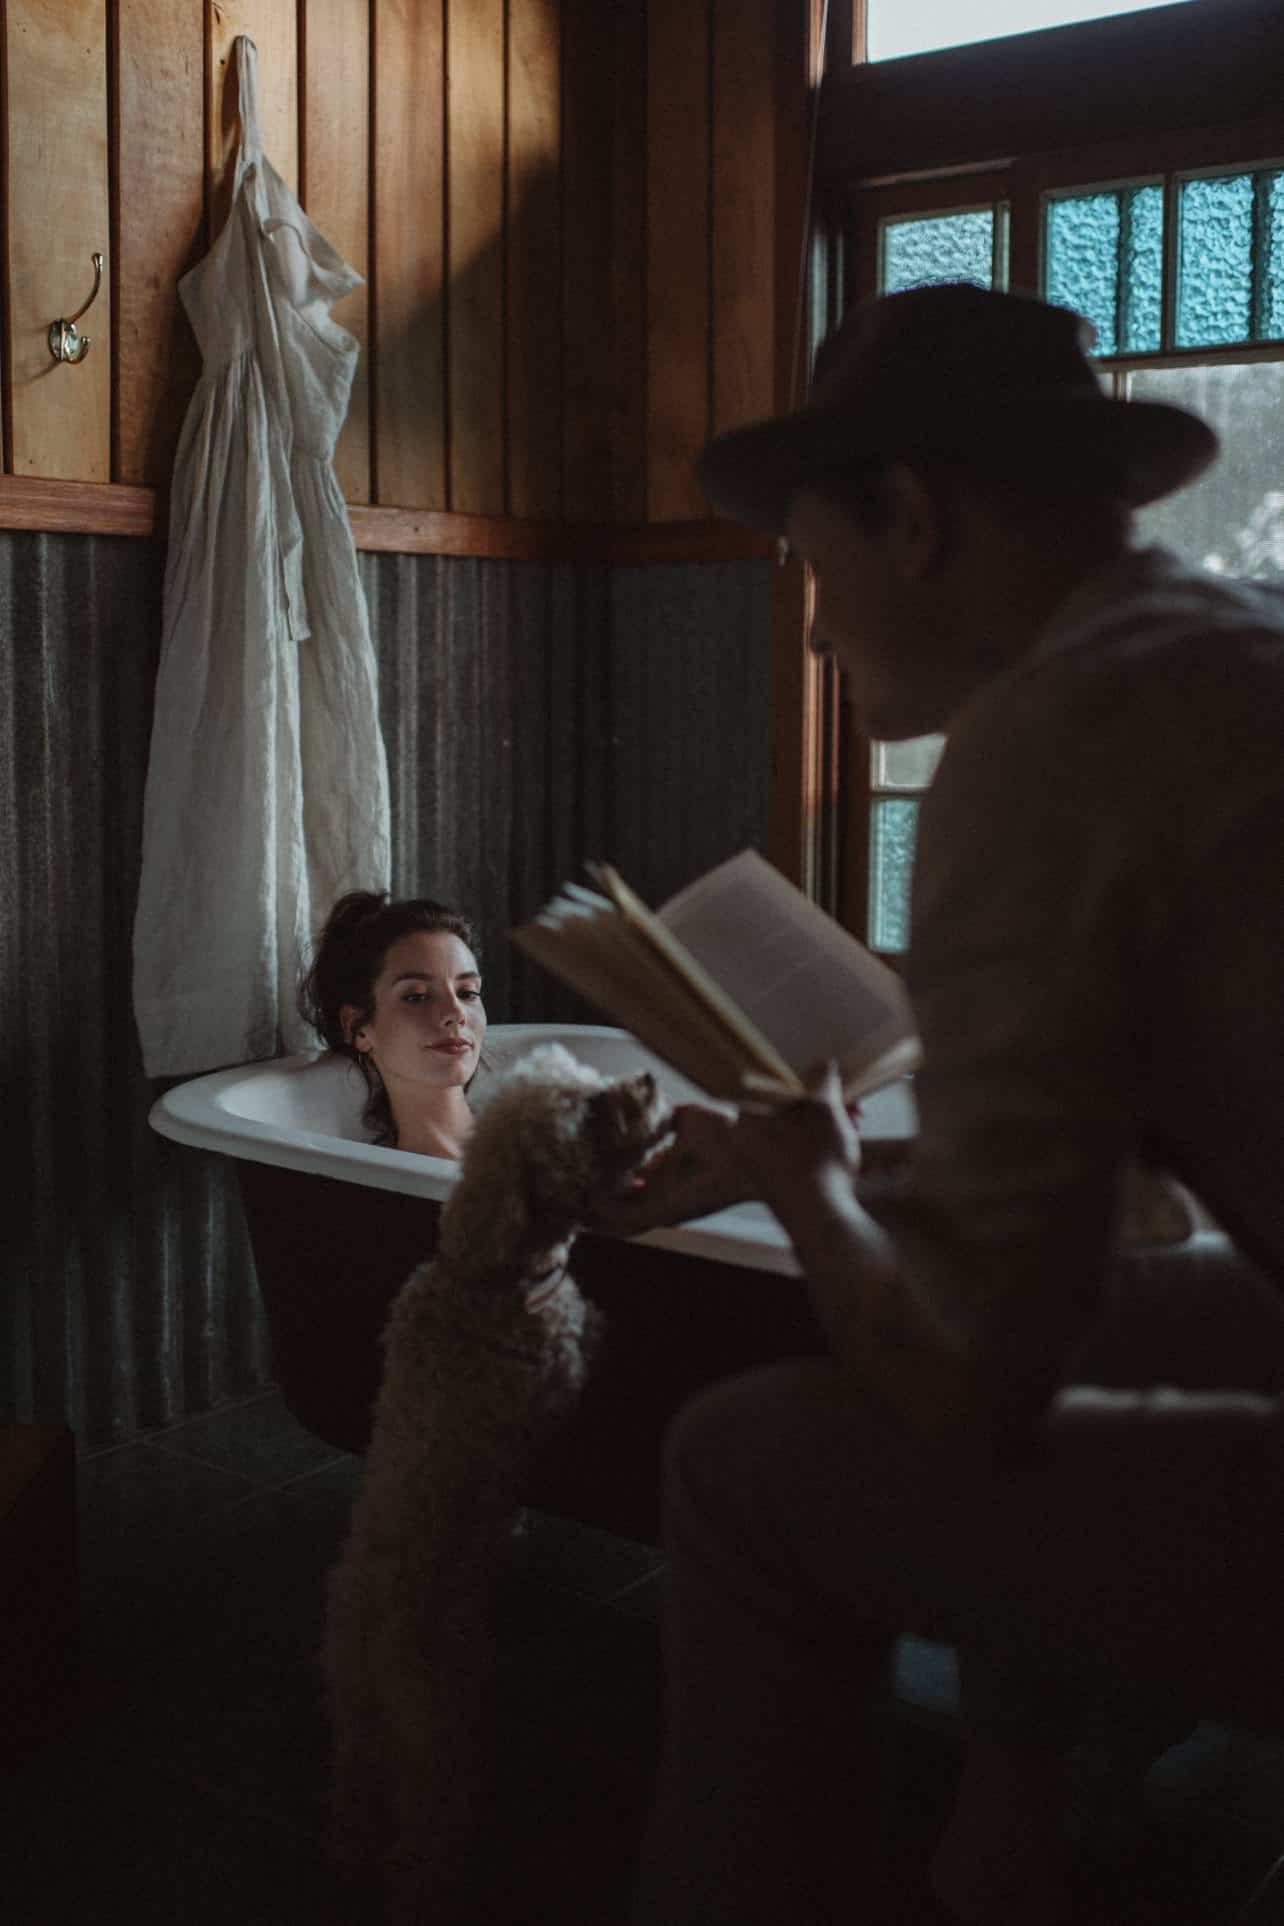 A man reads a book to his wife while she is sitting in the bathtub